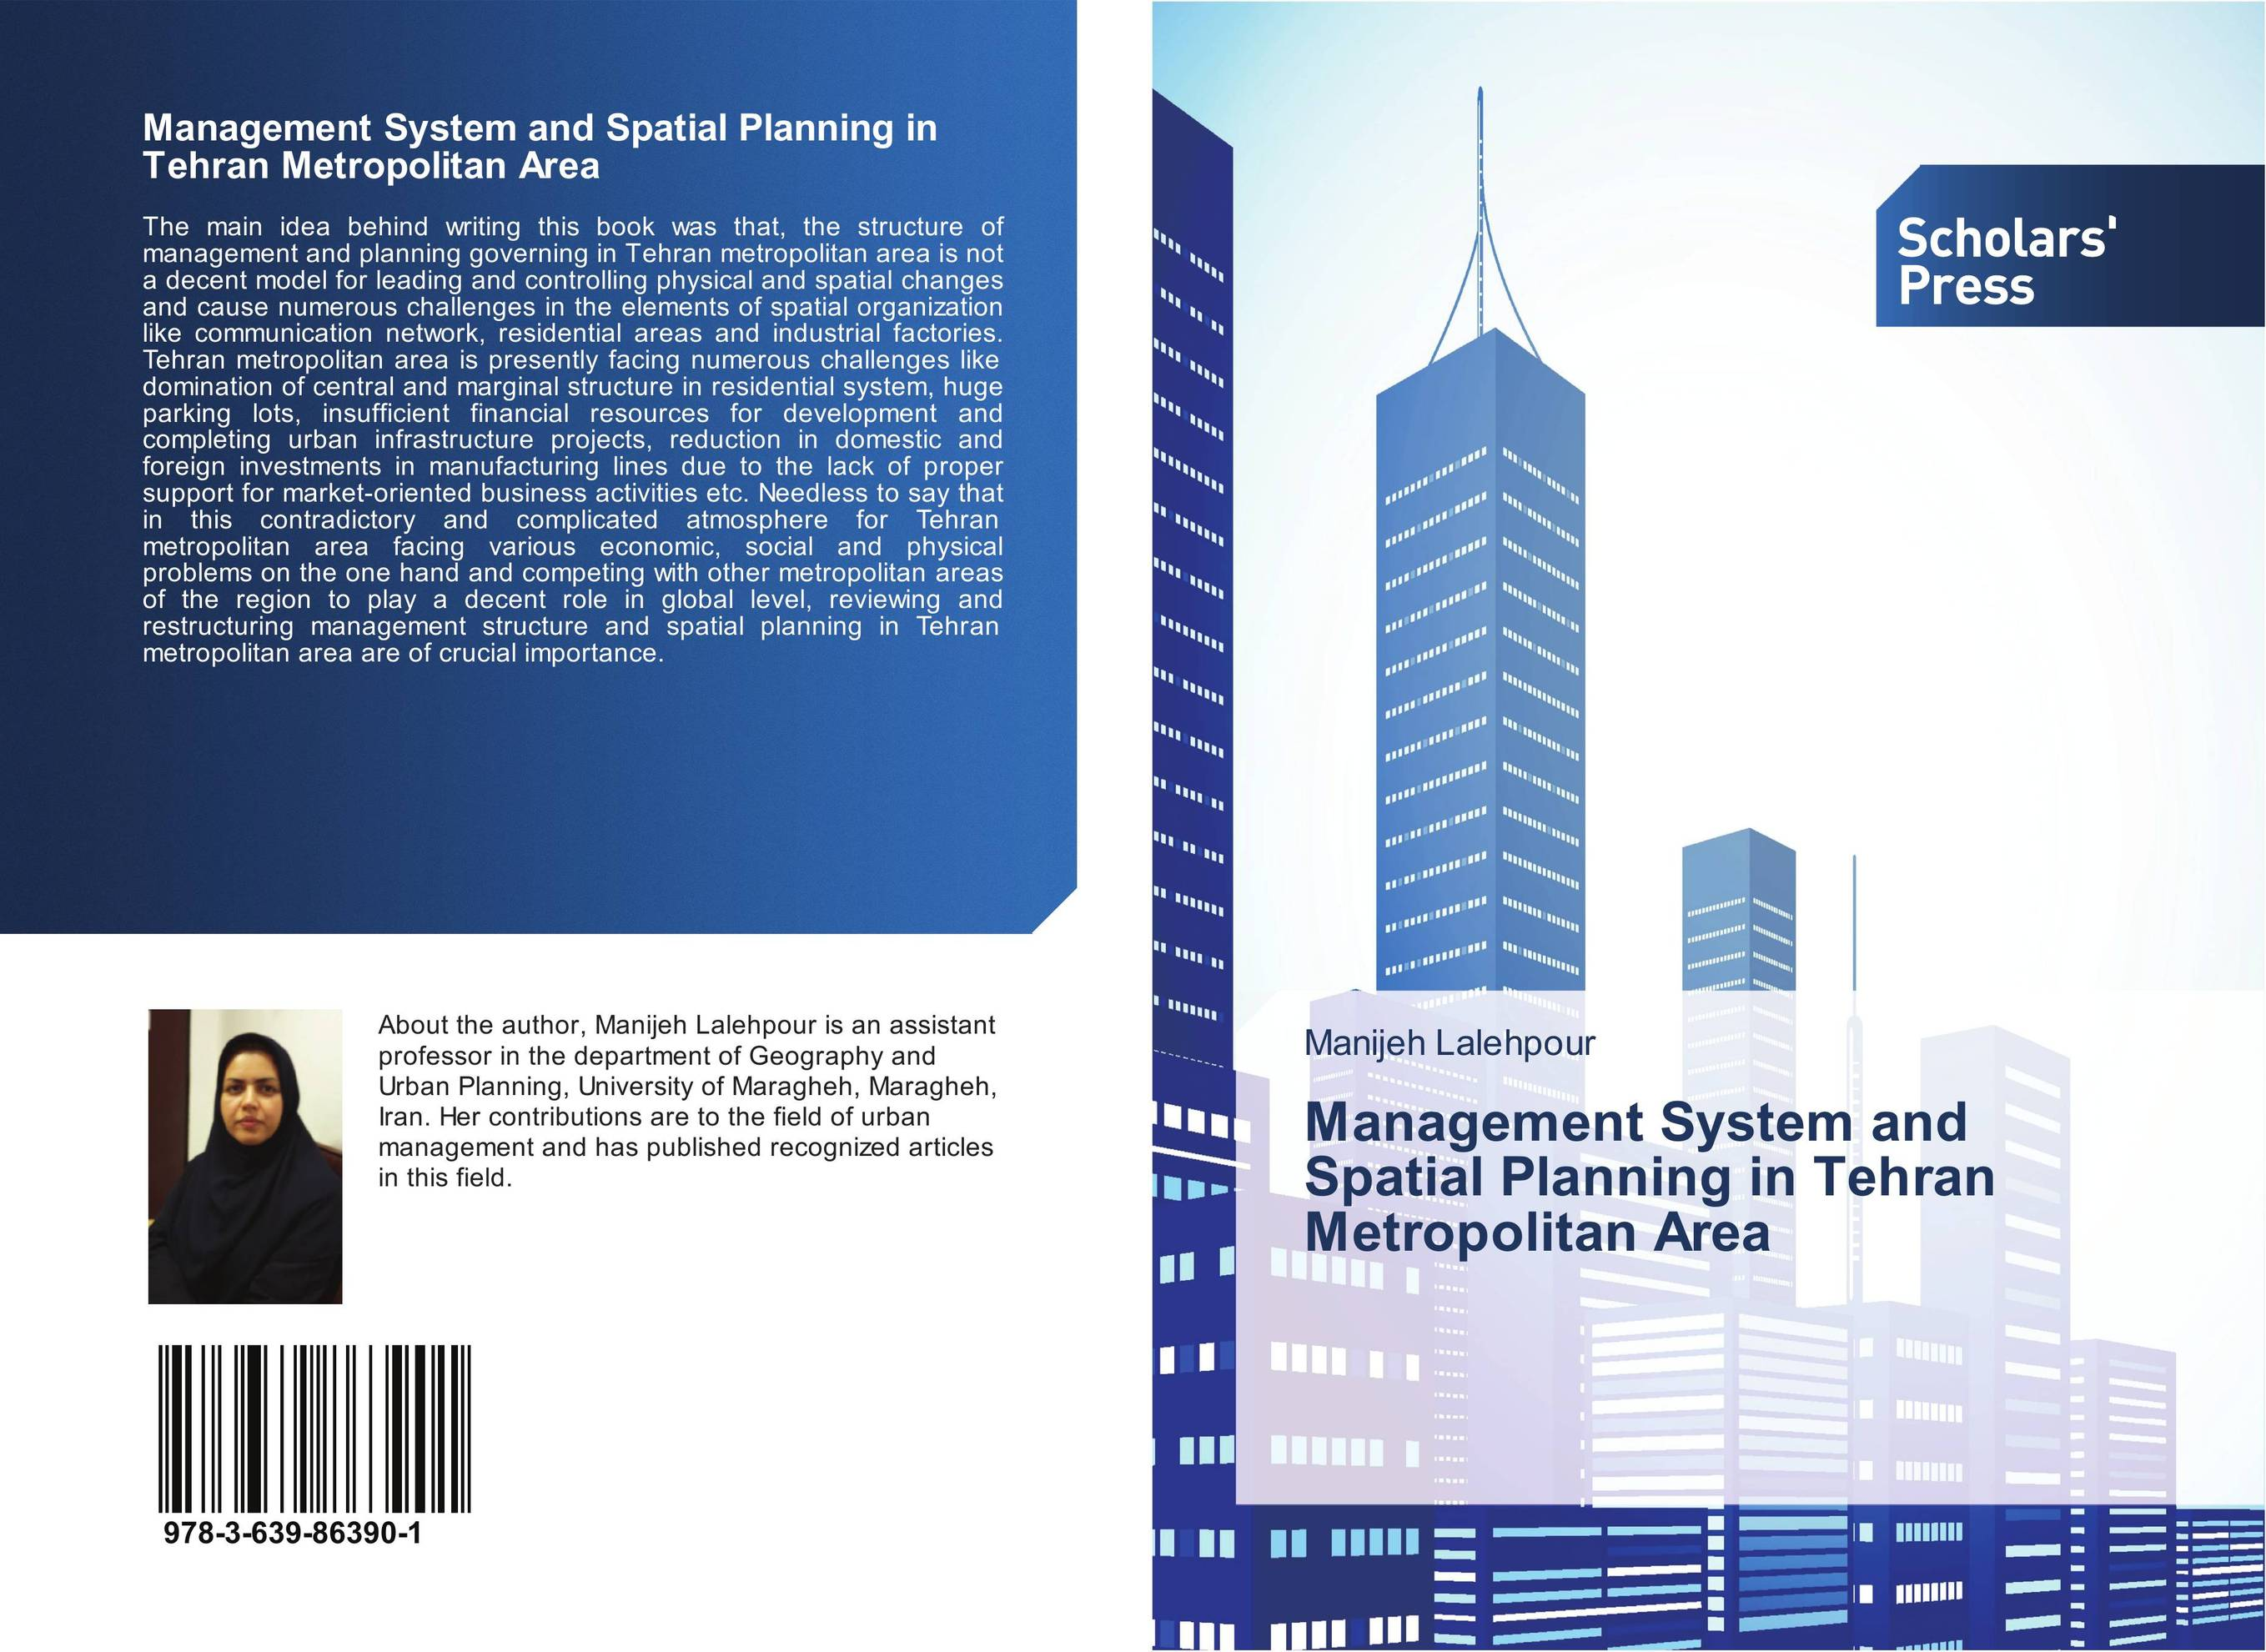 Management System and Spatial Planning in Tehran Metropolitan Area a decision support tool for library book inventory management